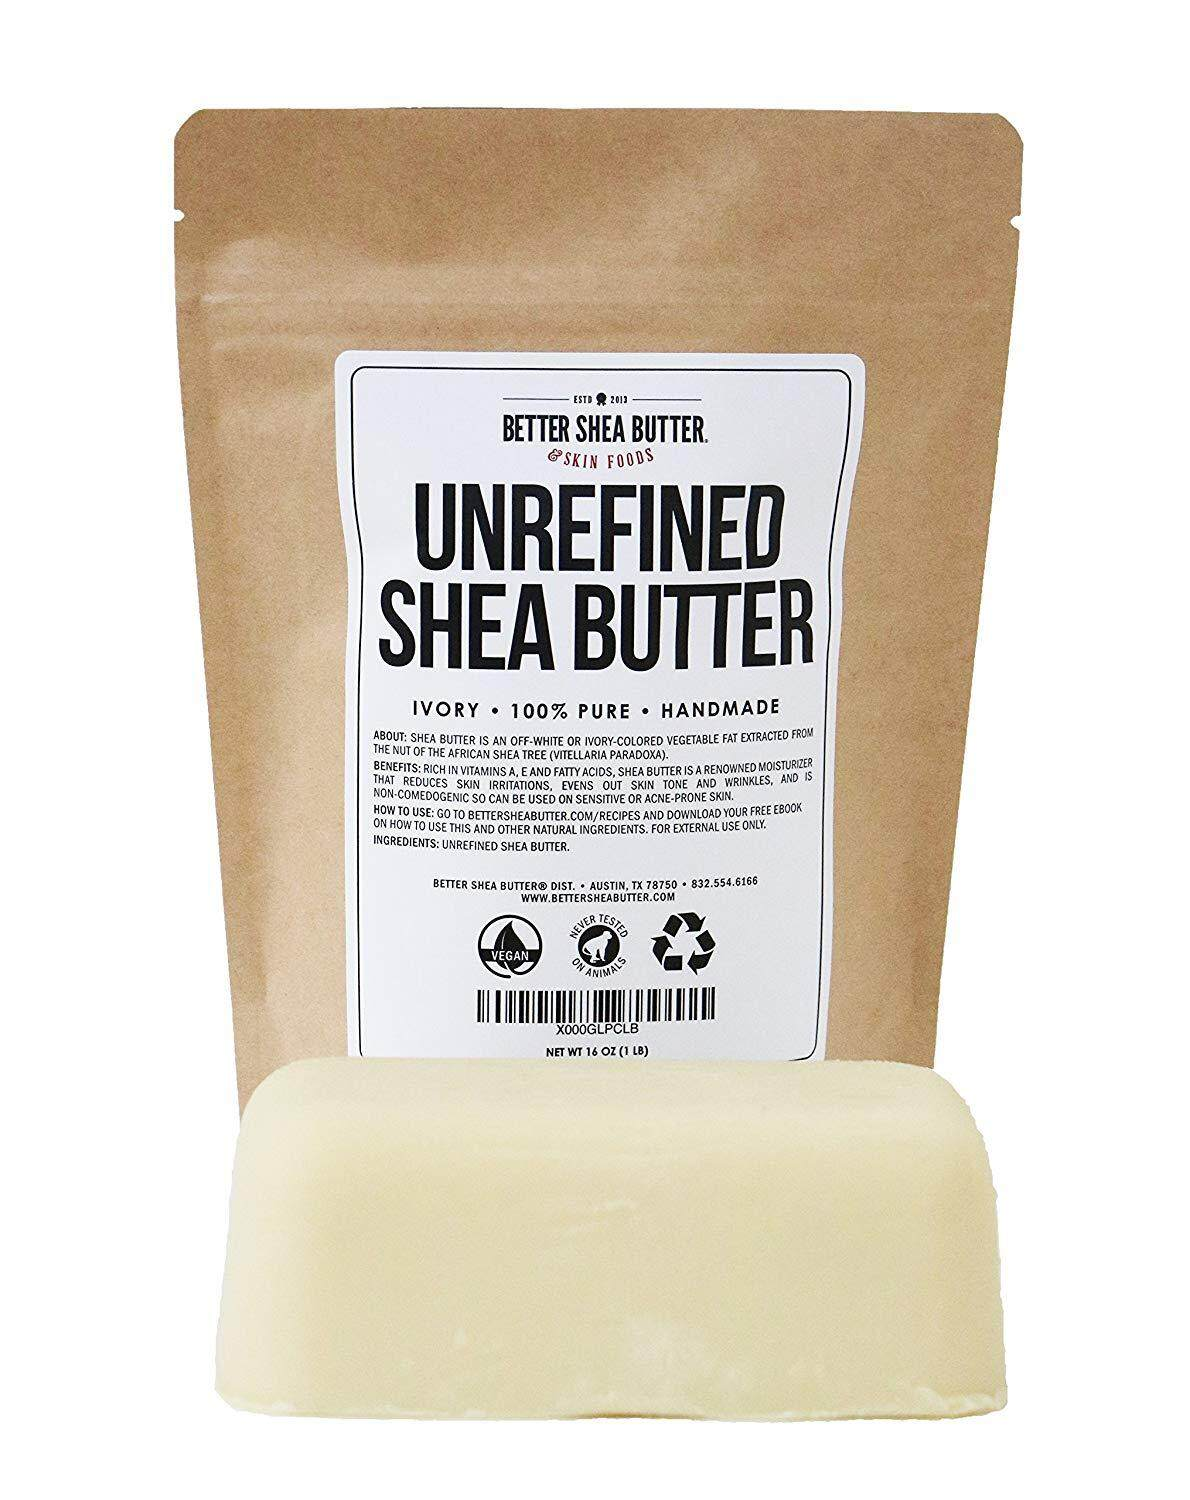 Unrefined Ivory Shea Butter - Raw, 100% Pure, from West Africa - Moisturizing for Dry, Cracked Skin and Eczema - Use on Body, Face and Hair and in DIY